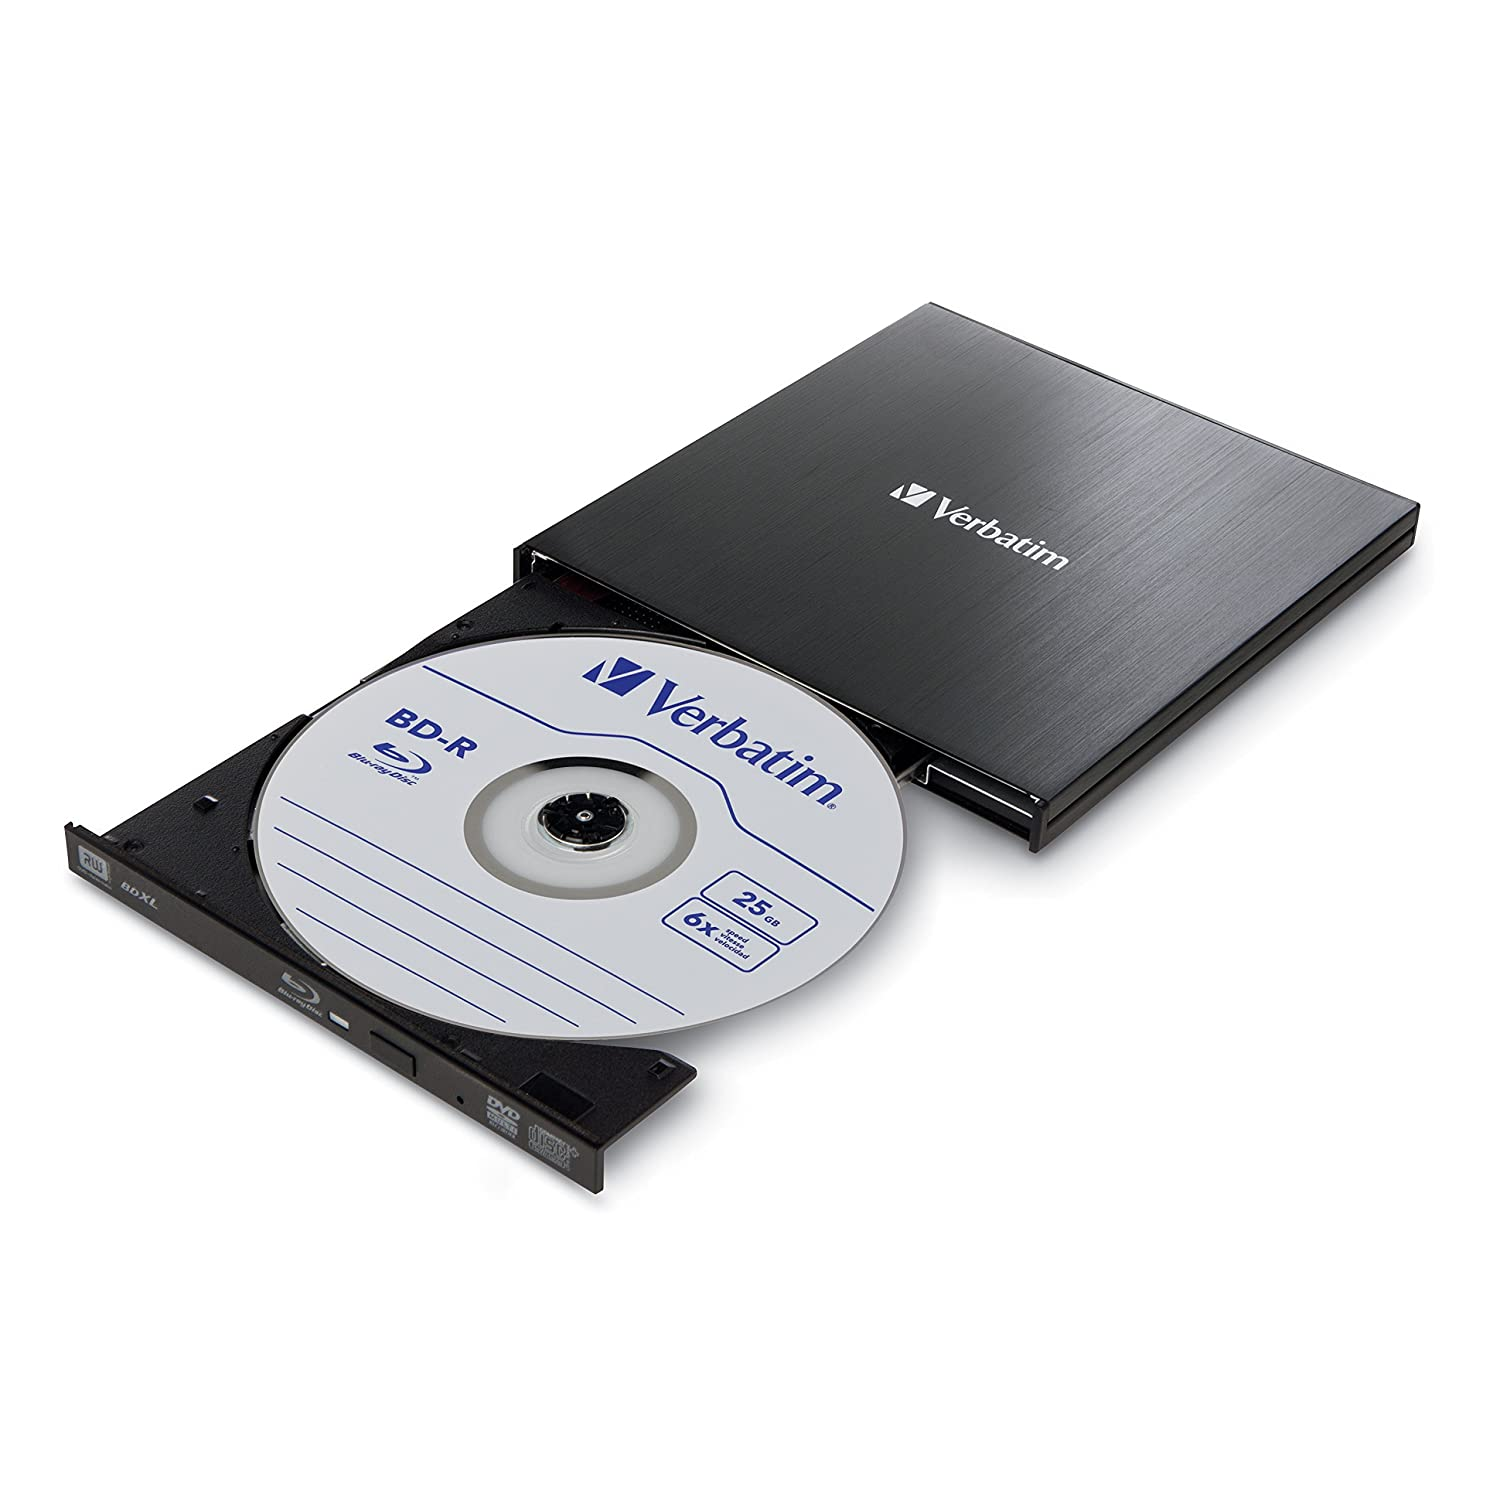 Amazon.com: Verbatim External Slimline Blu-Ray Writer ...